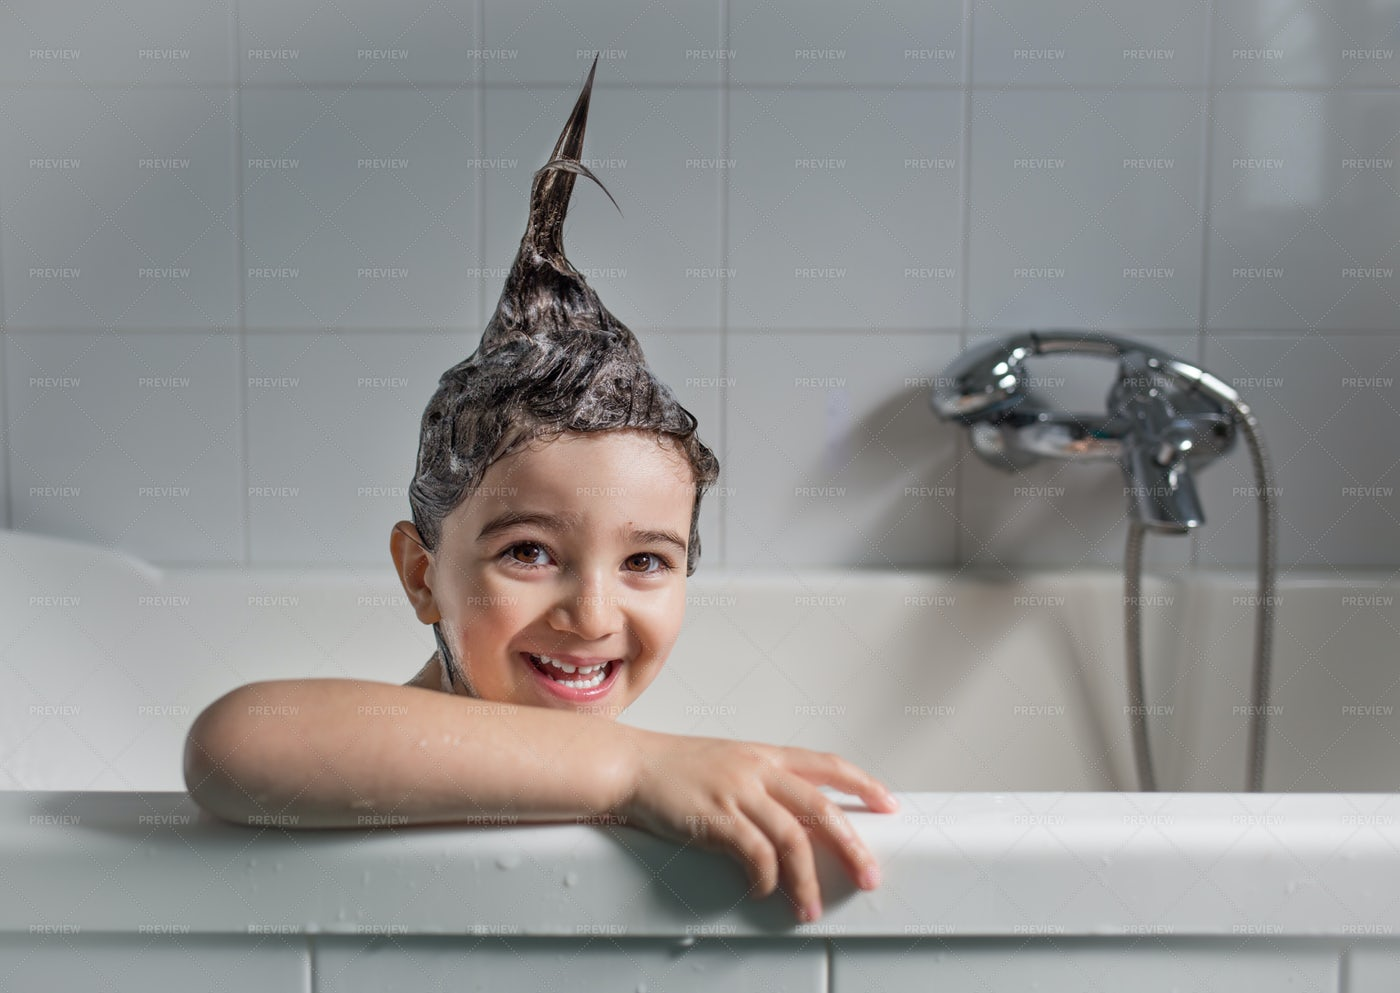 Smiling Child In A Bathtub: Stock Photos